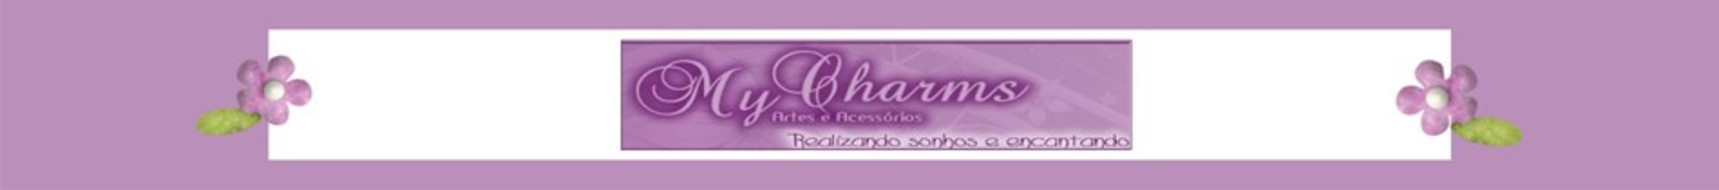 My Charms Artes e Acess�rios